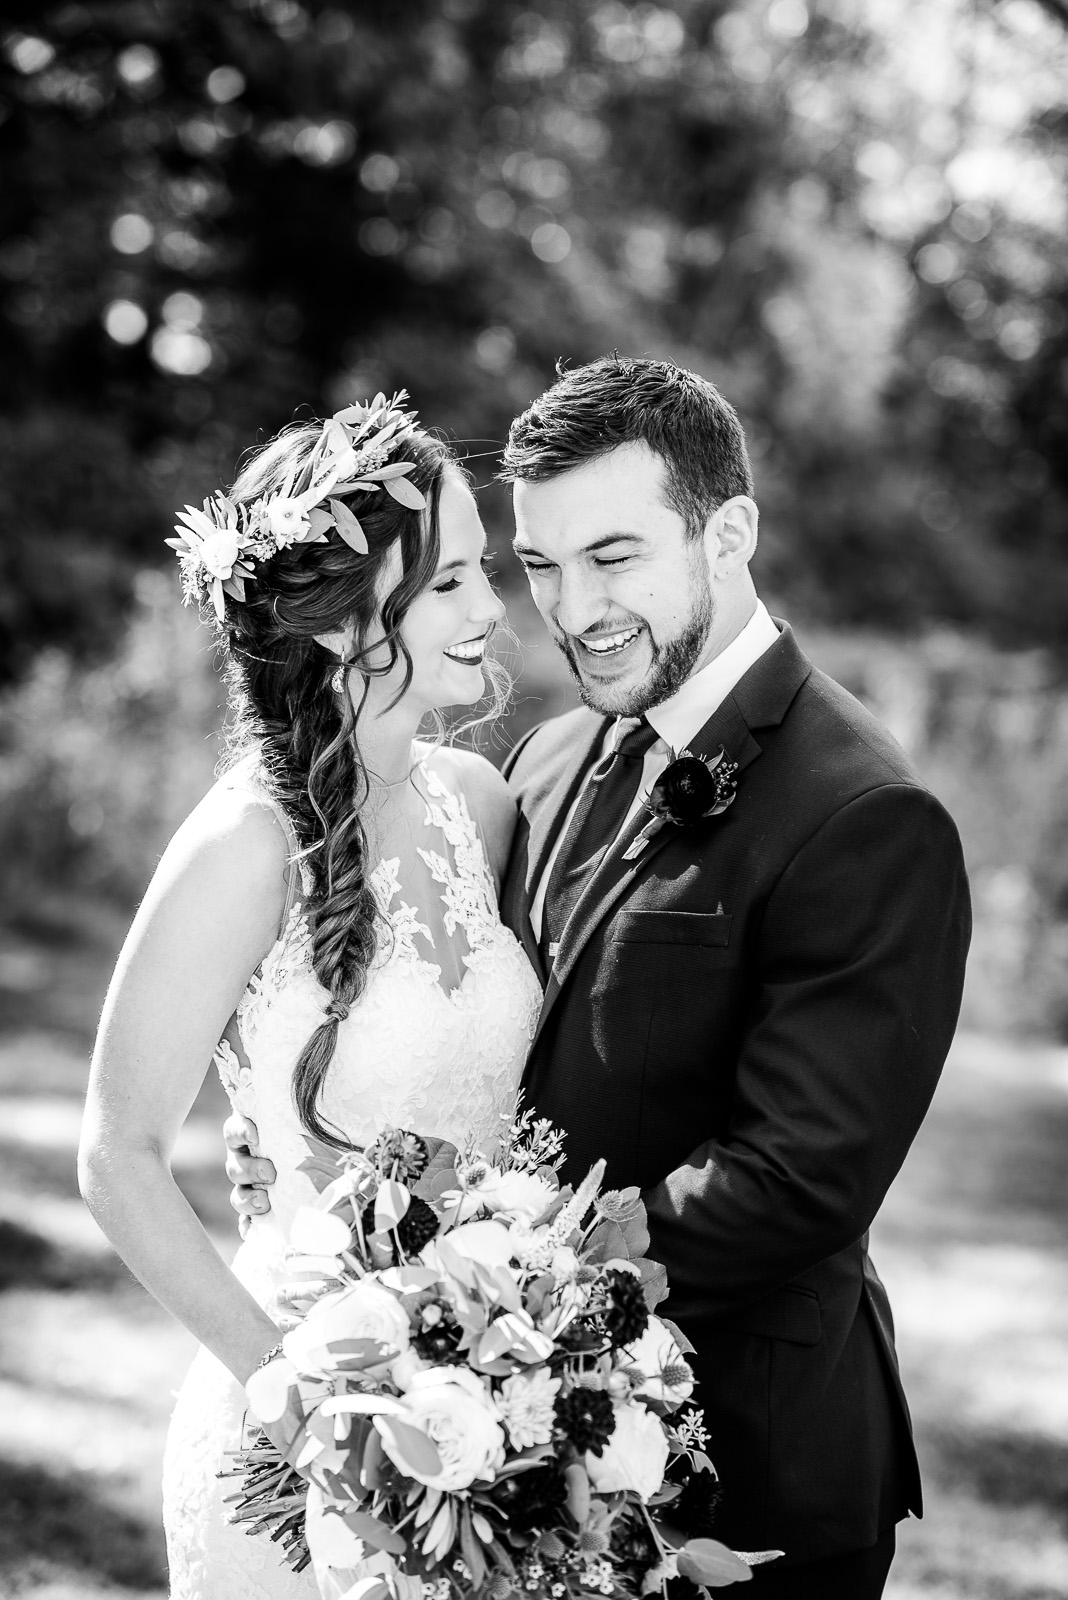 Eric_and_Christy_Photography_Blog_2018_Portraits-31